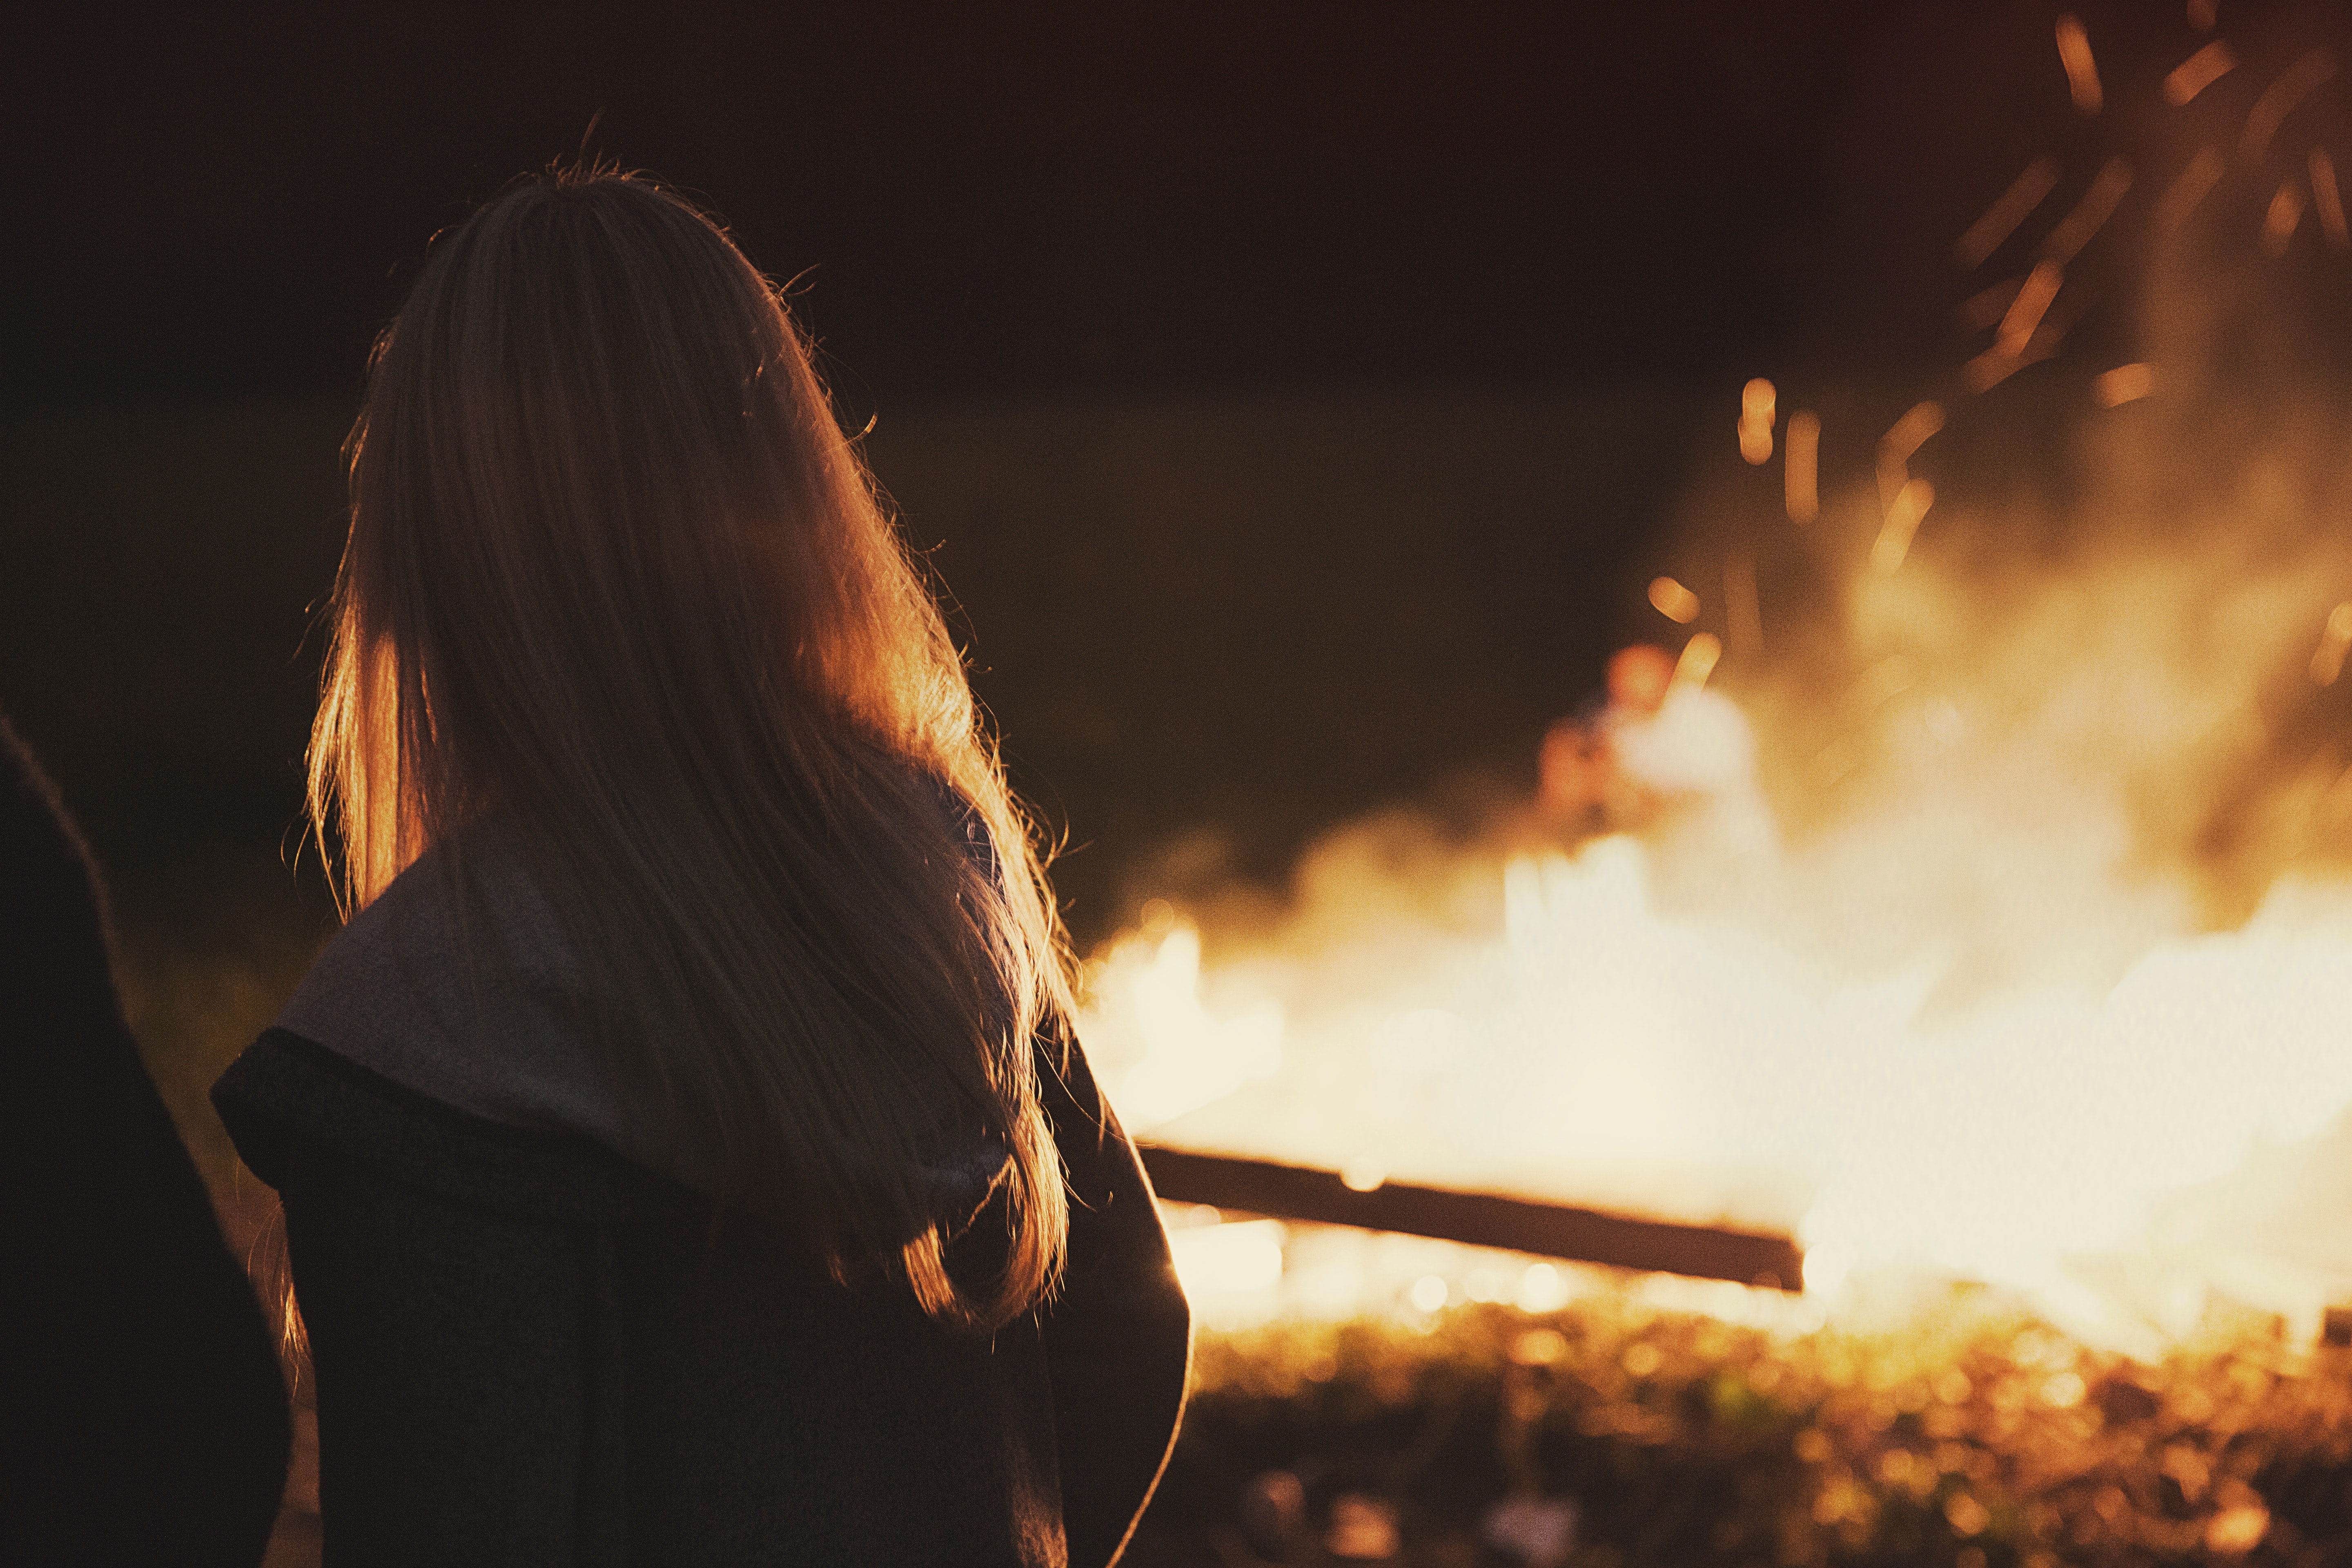 Blonde female captured watching a burning campfire.